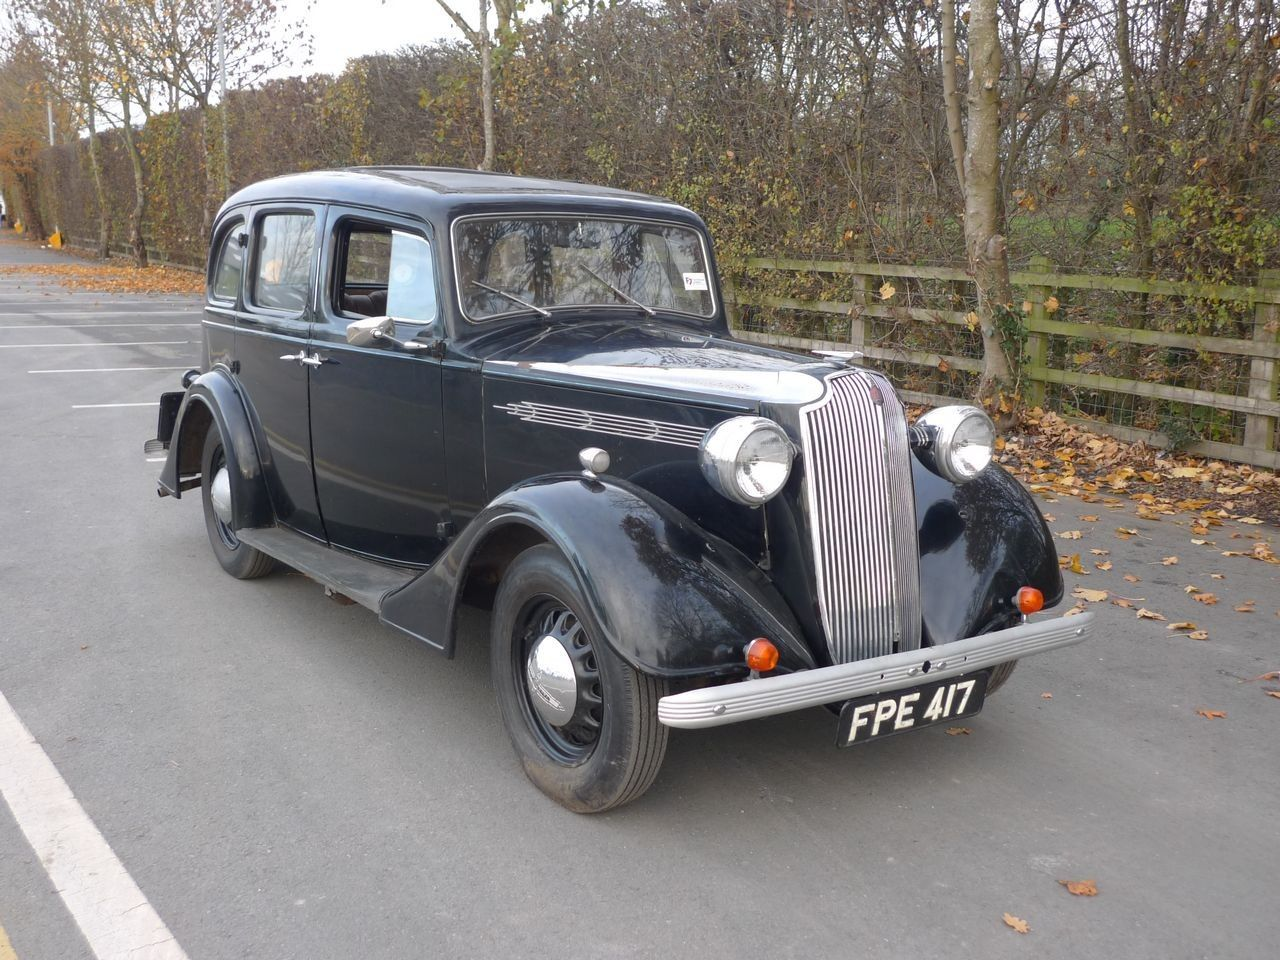 vauxhall dx saloon 1937 first car my dad bought when we came to new zealand in 1959 was one of. Black Bedroom Furniture Sets. Home Design Ideas